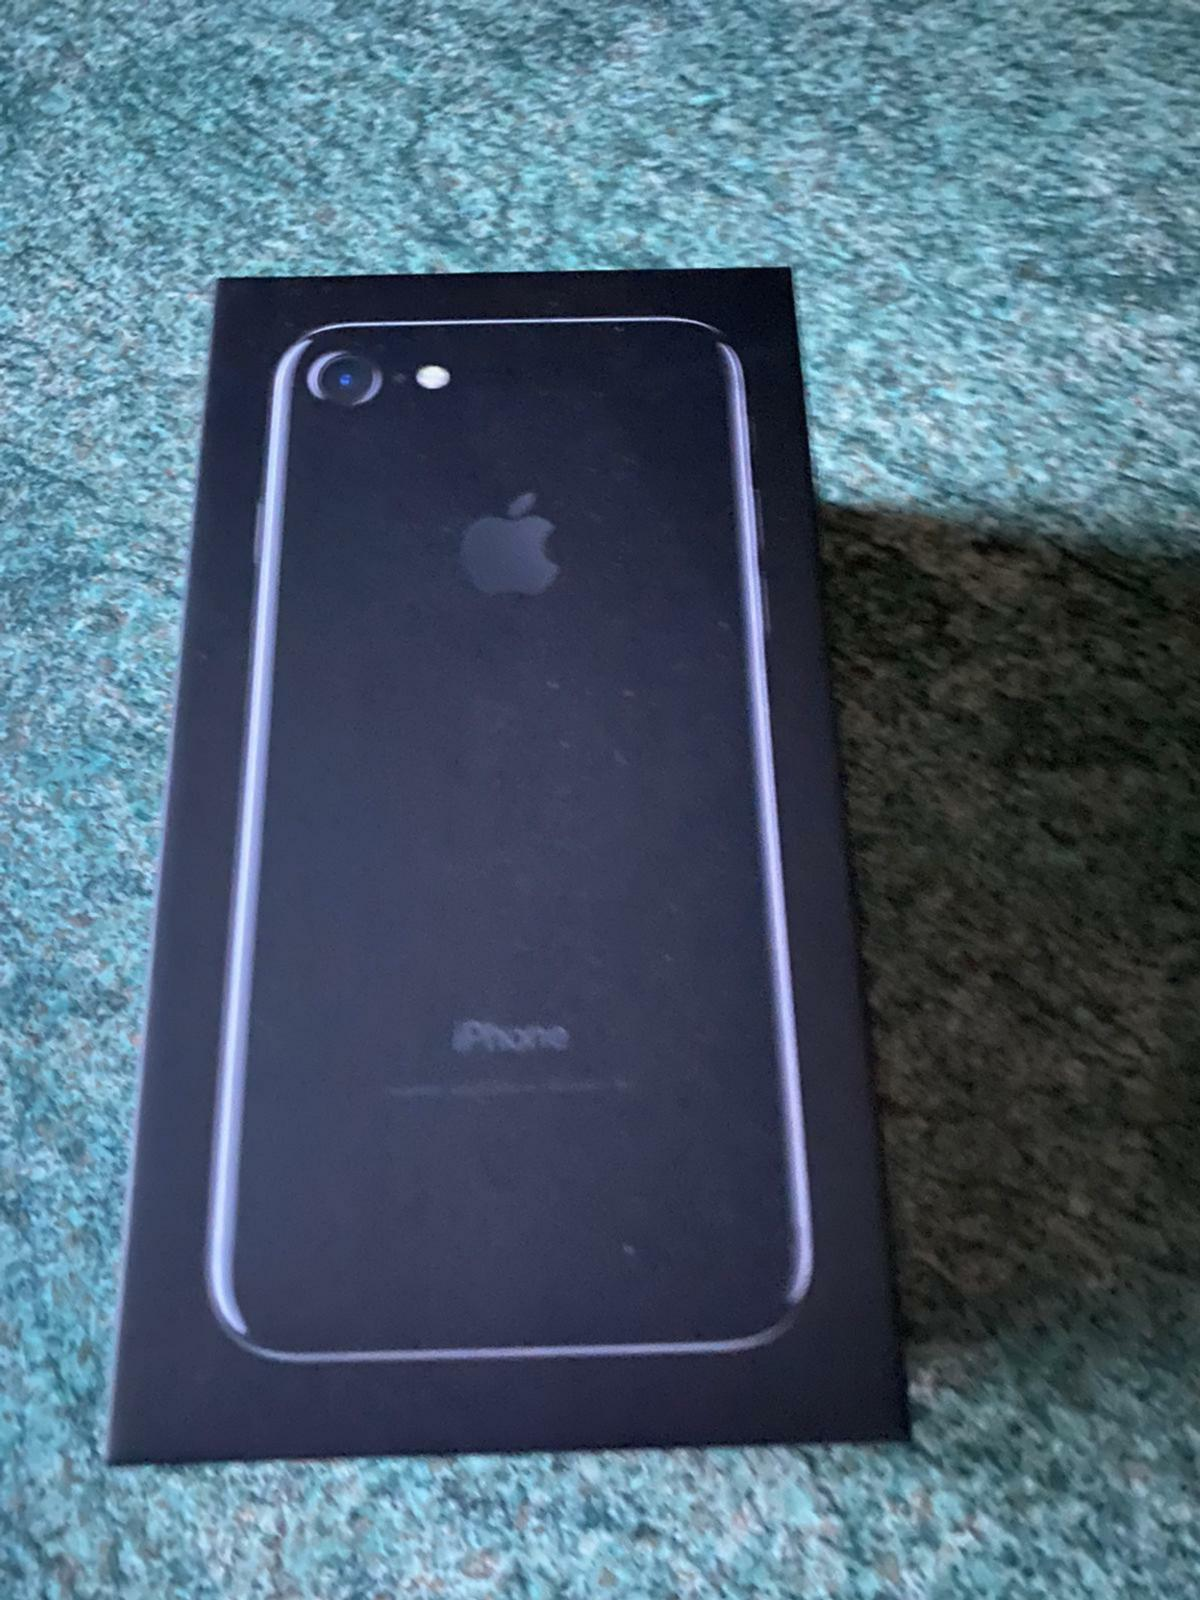 Iphone7.  Immaculate condition, no scratch or dents Comes in box with brand new original charger adapter and Earphones 128gb Unlocked to any network